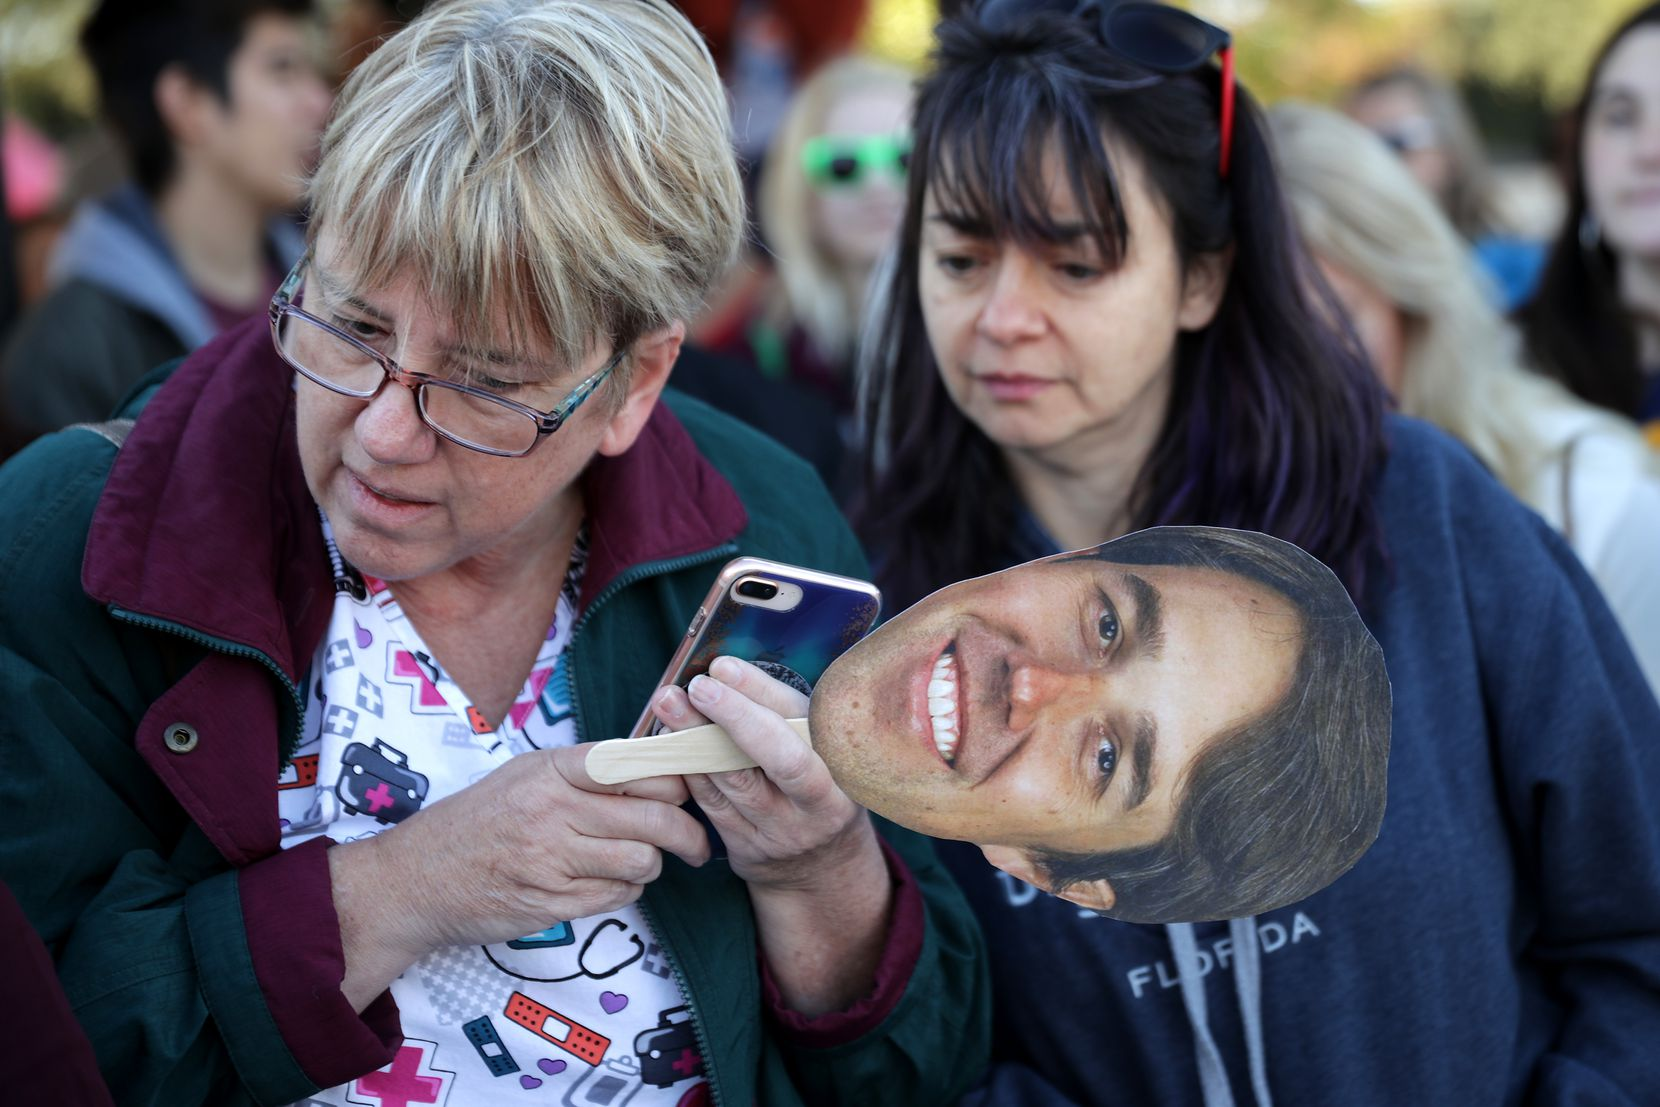 Beto O'Rourke supporters follow a live video live feed to keep track of his scheduled arrival at a Nov. 2 campaign rally at Wayne Frady Park in Lewisville.